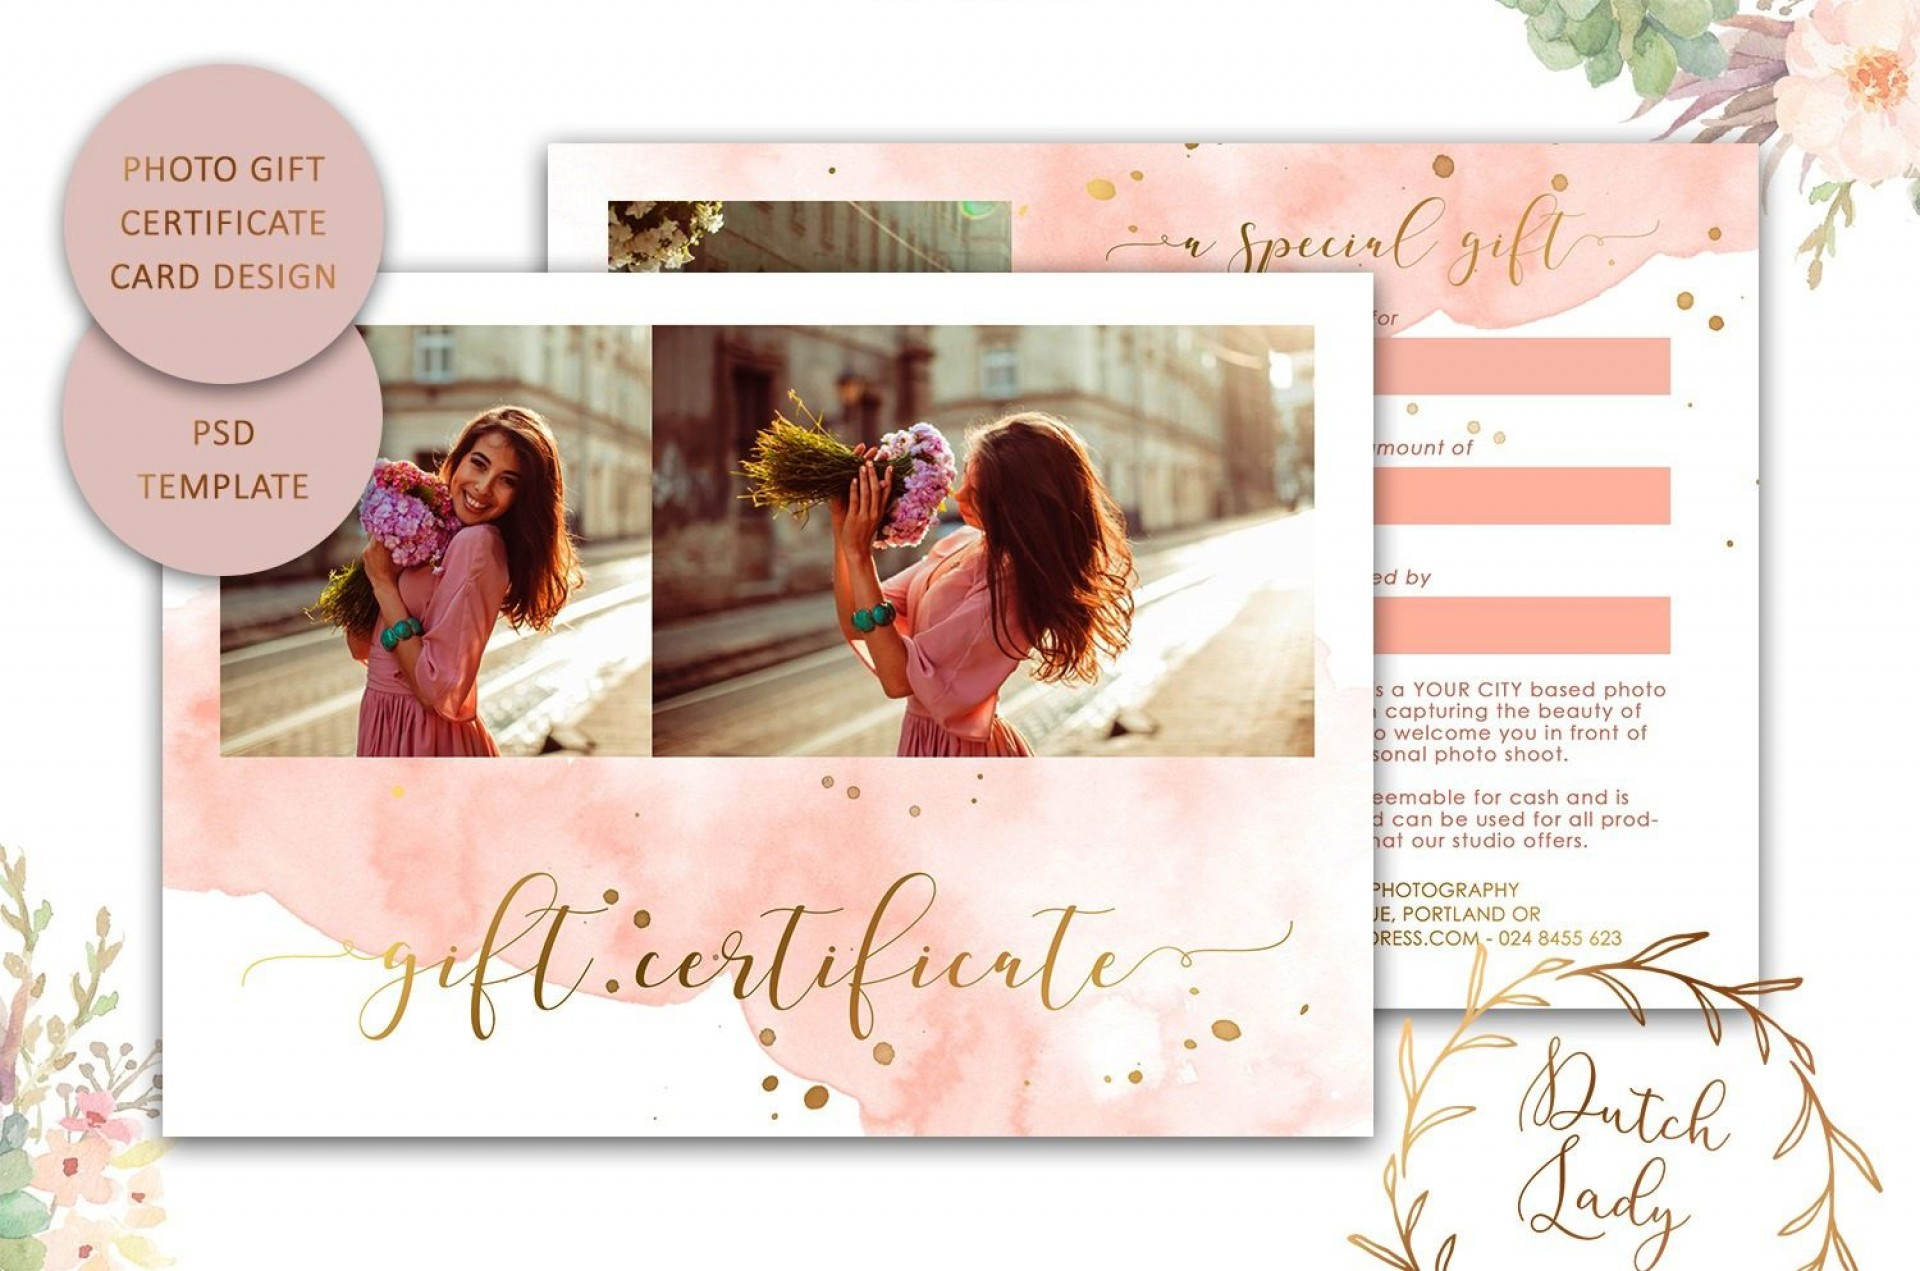 009 Top Photography Session Gift Certificate Template Picture  Photo Free1920